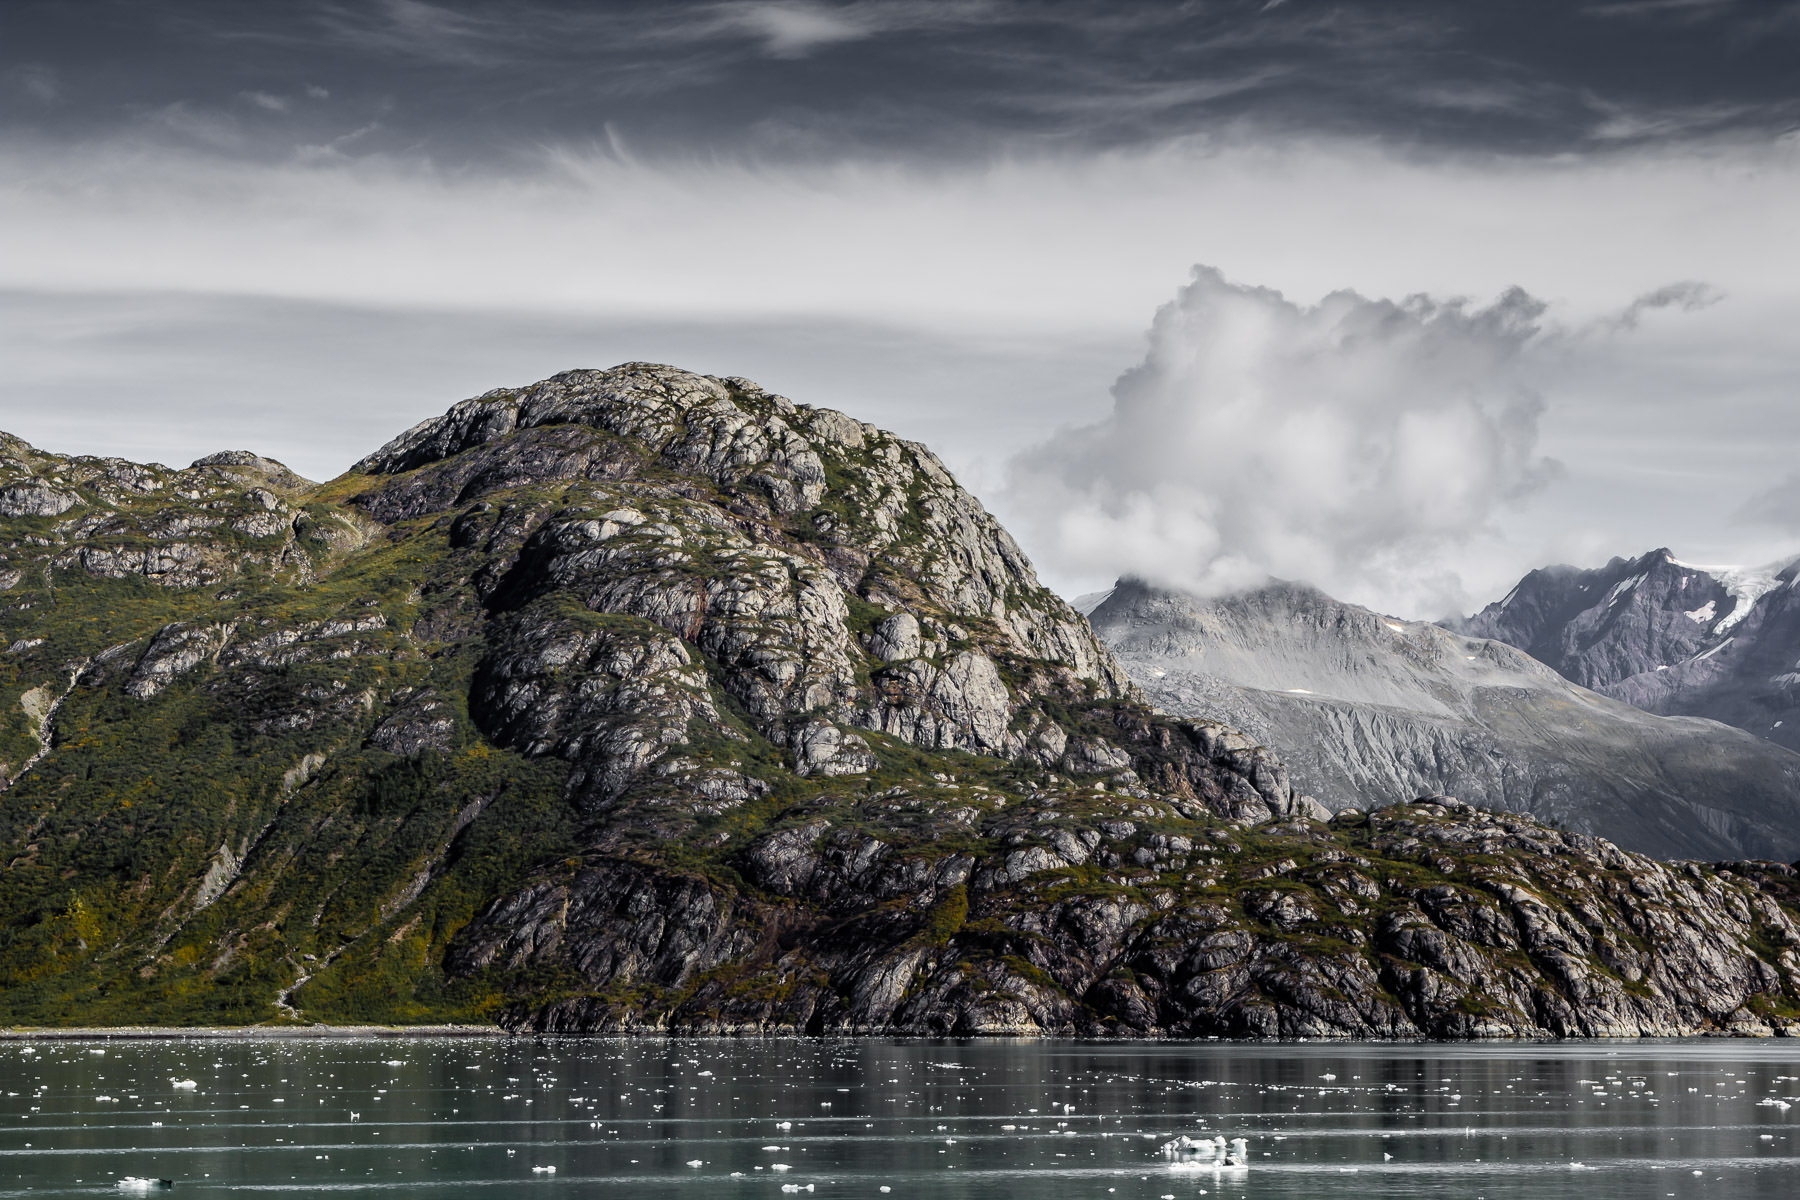 The rugged, cold landscape of Alaska's Glacier Bay National Park.